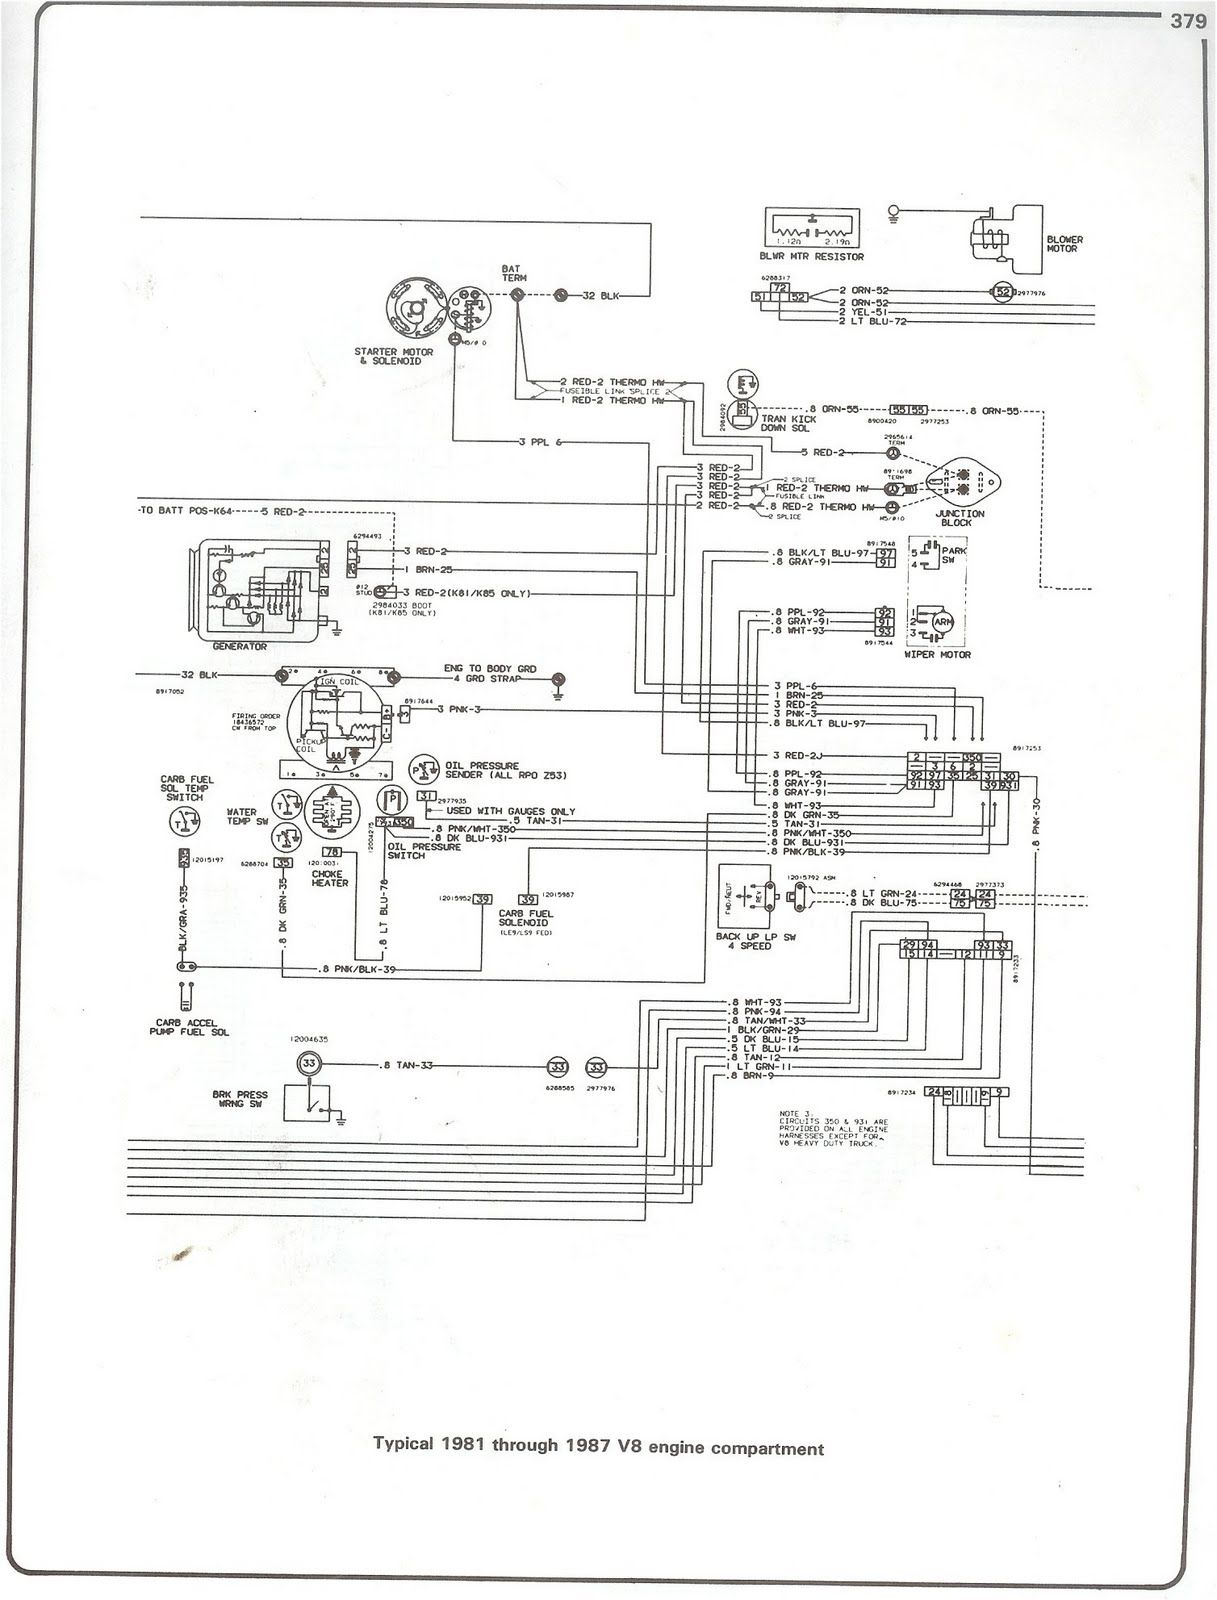 bus engine compartment diagram 2007 dodge caliber radio wiring this is for 1981 trough